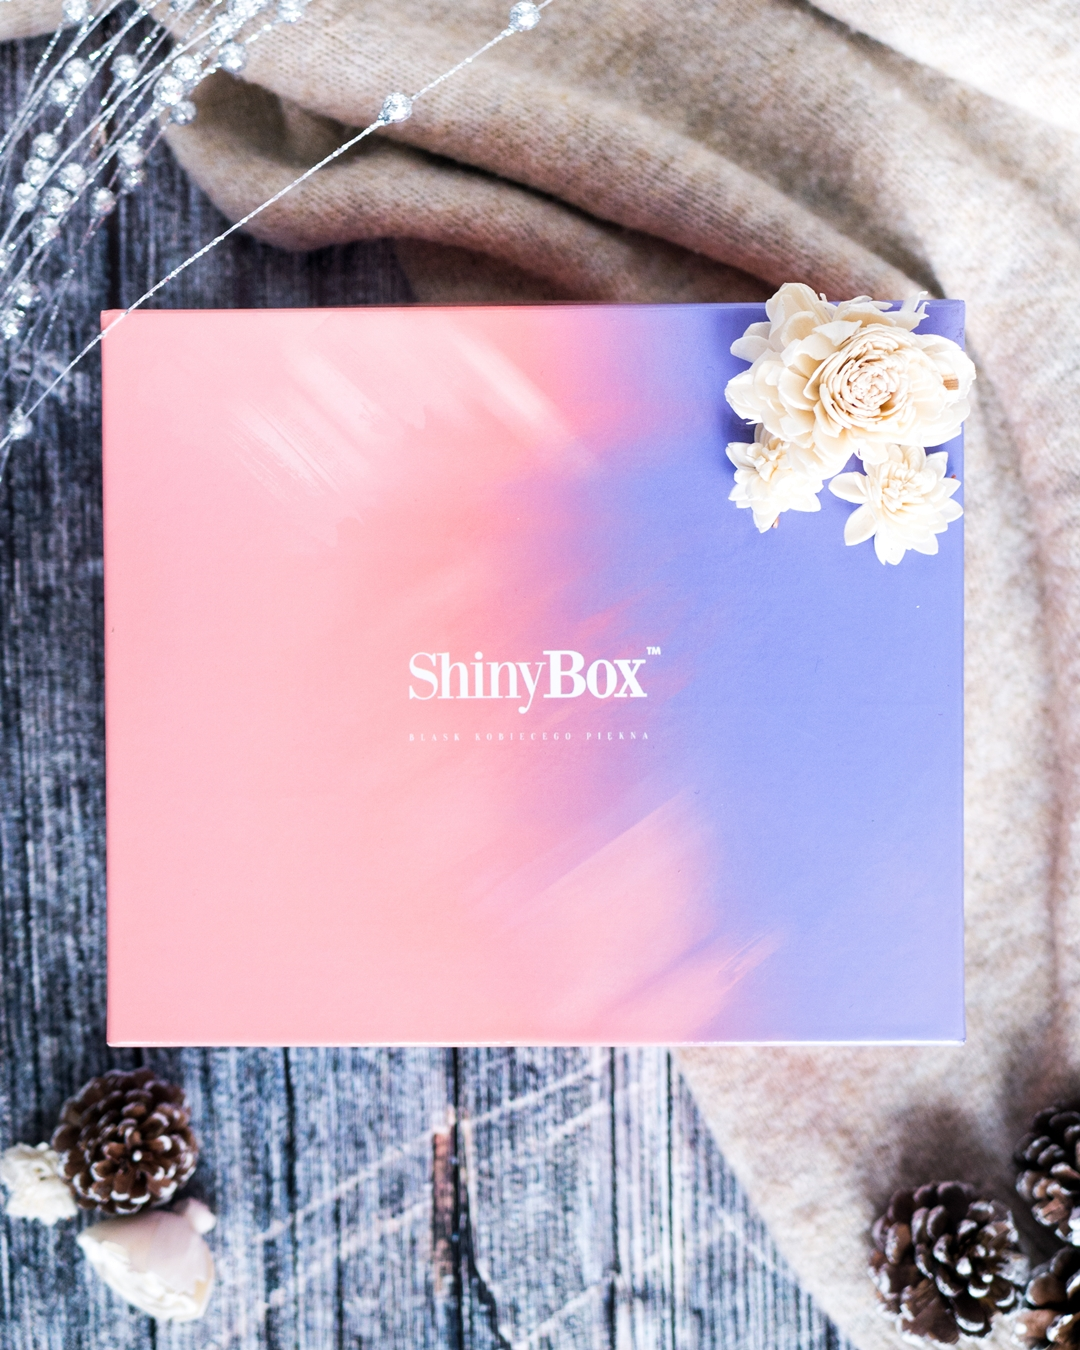 ShinyBox | The Power of Beauty